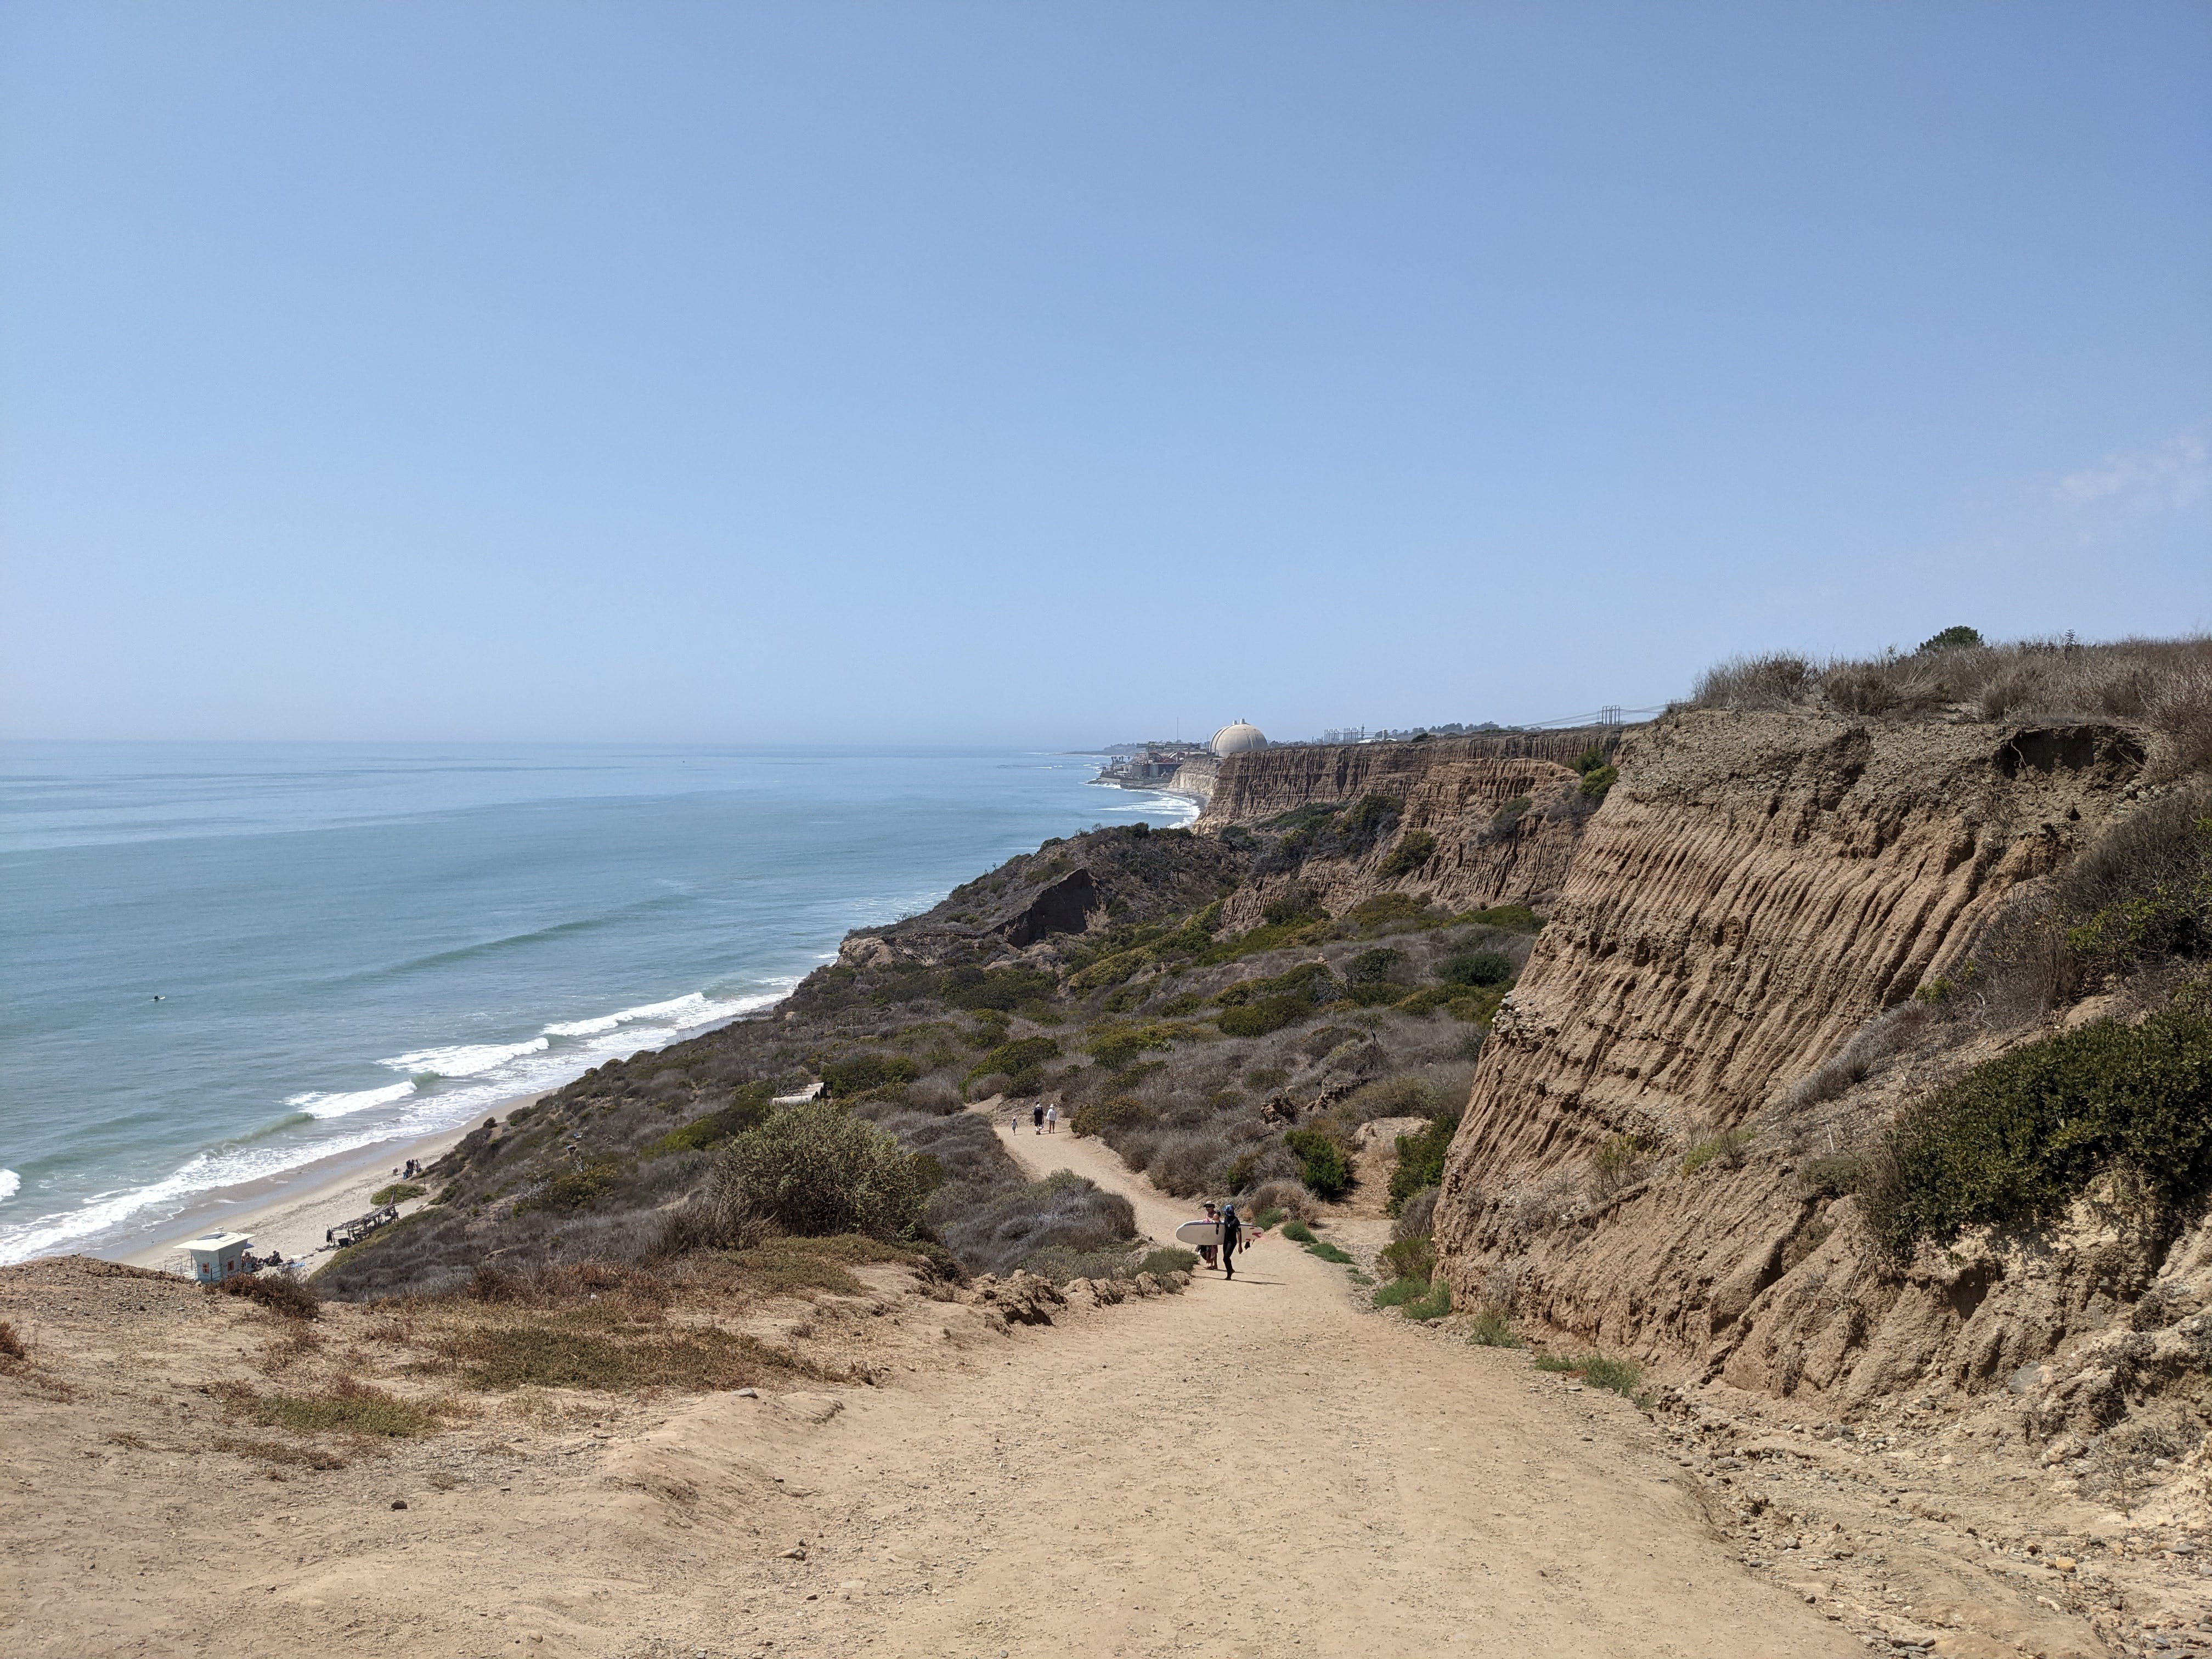 San Onofre Bluffs Trail overlooking San Onofre State Beach in San Diego County